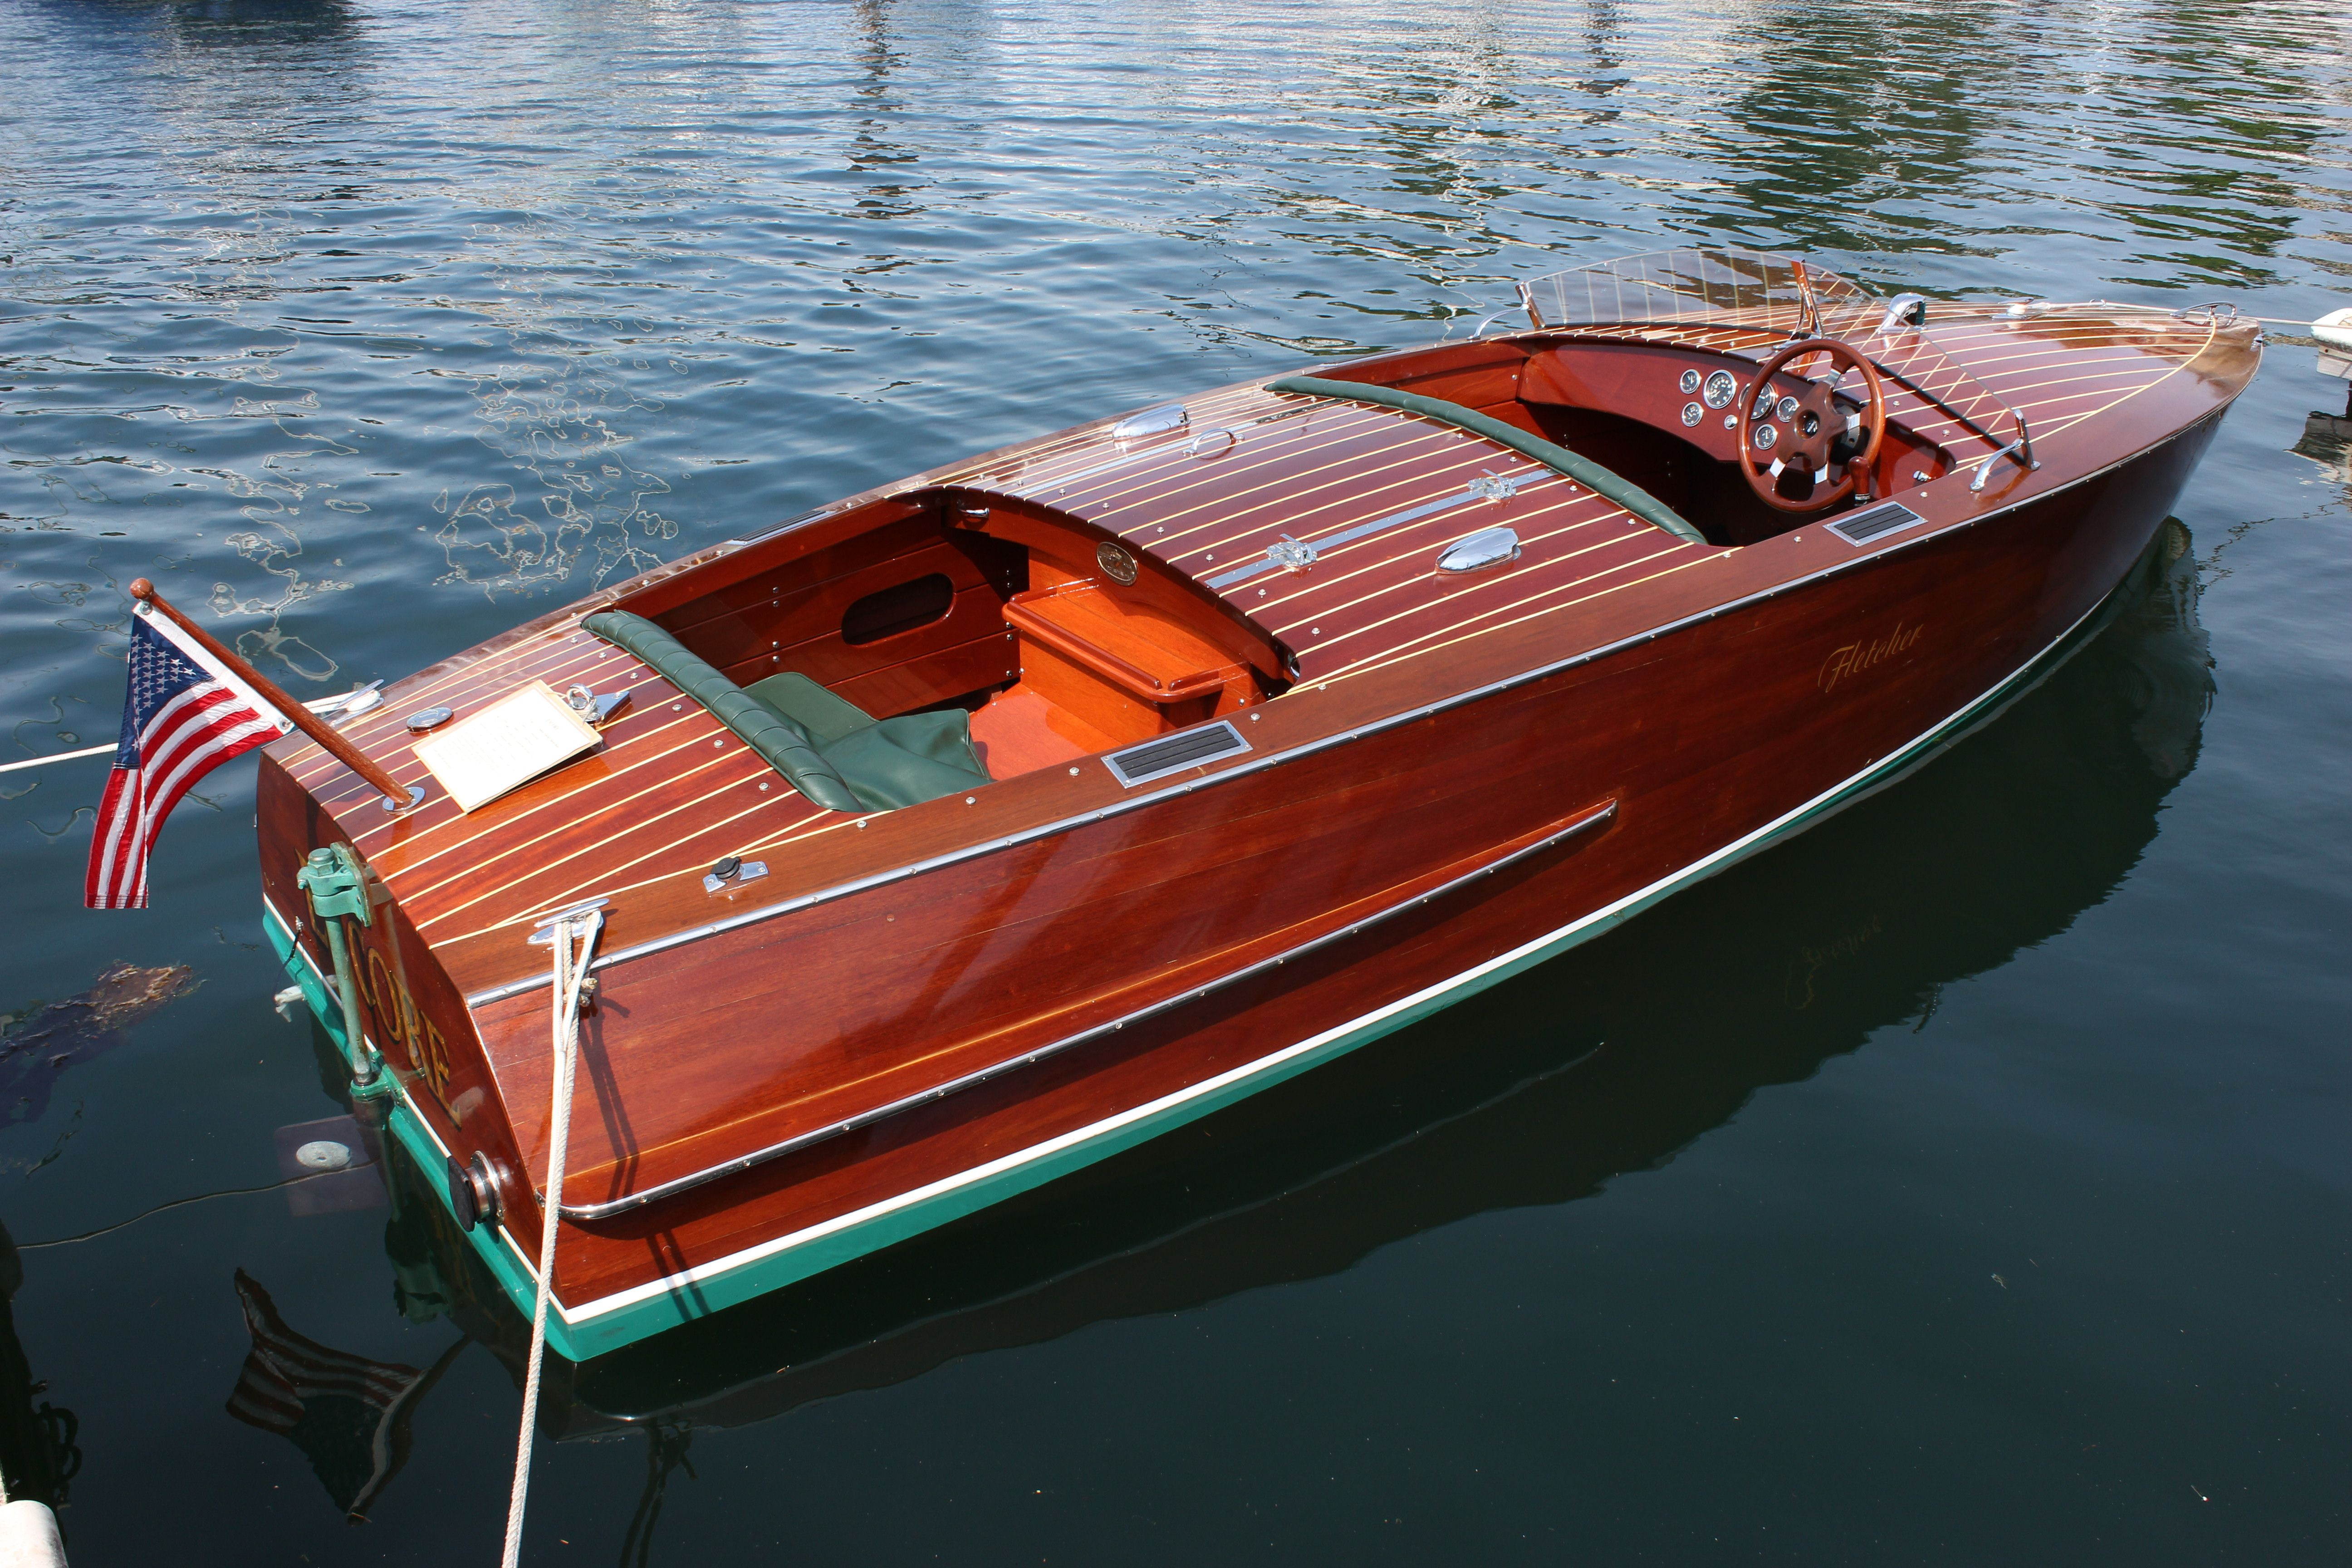 Wooden_Boat #woodenboat | Wooden boat fine art | Classic wooden boats, Boat, Runabout boat